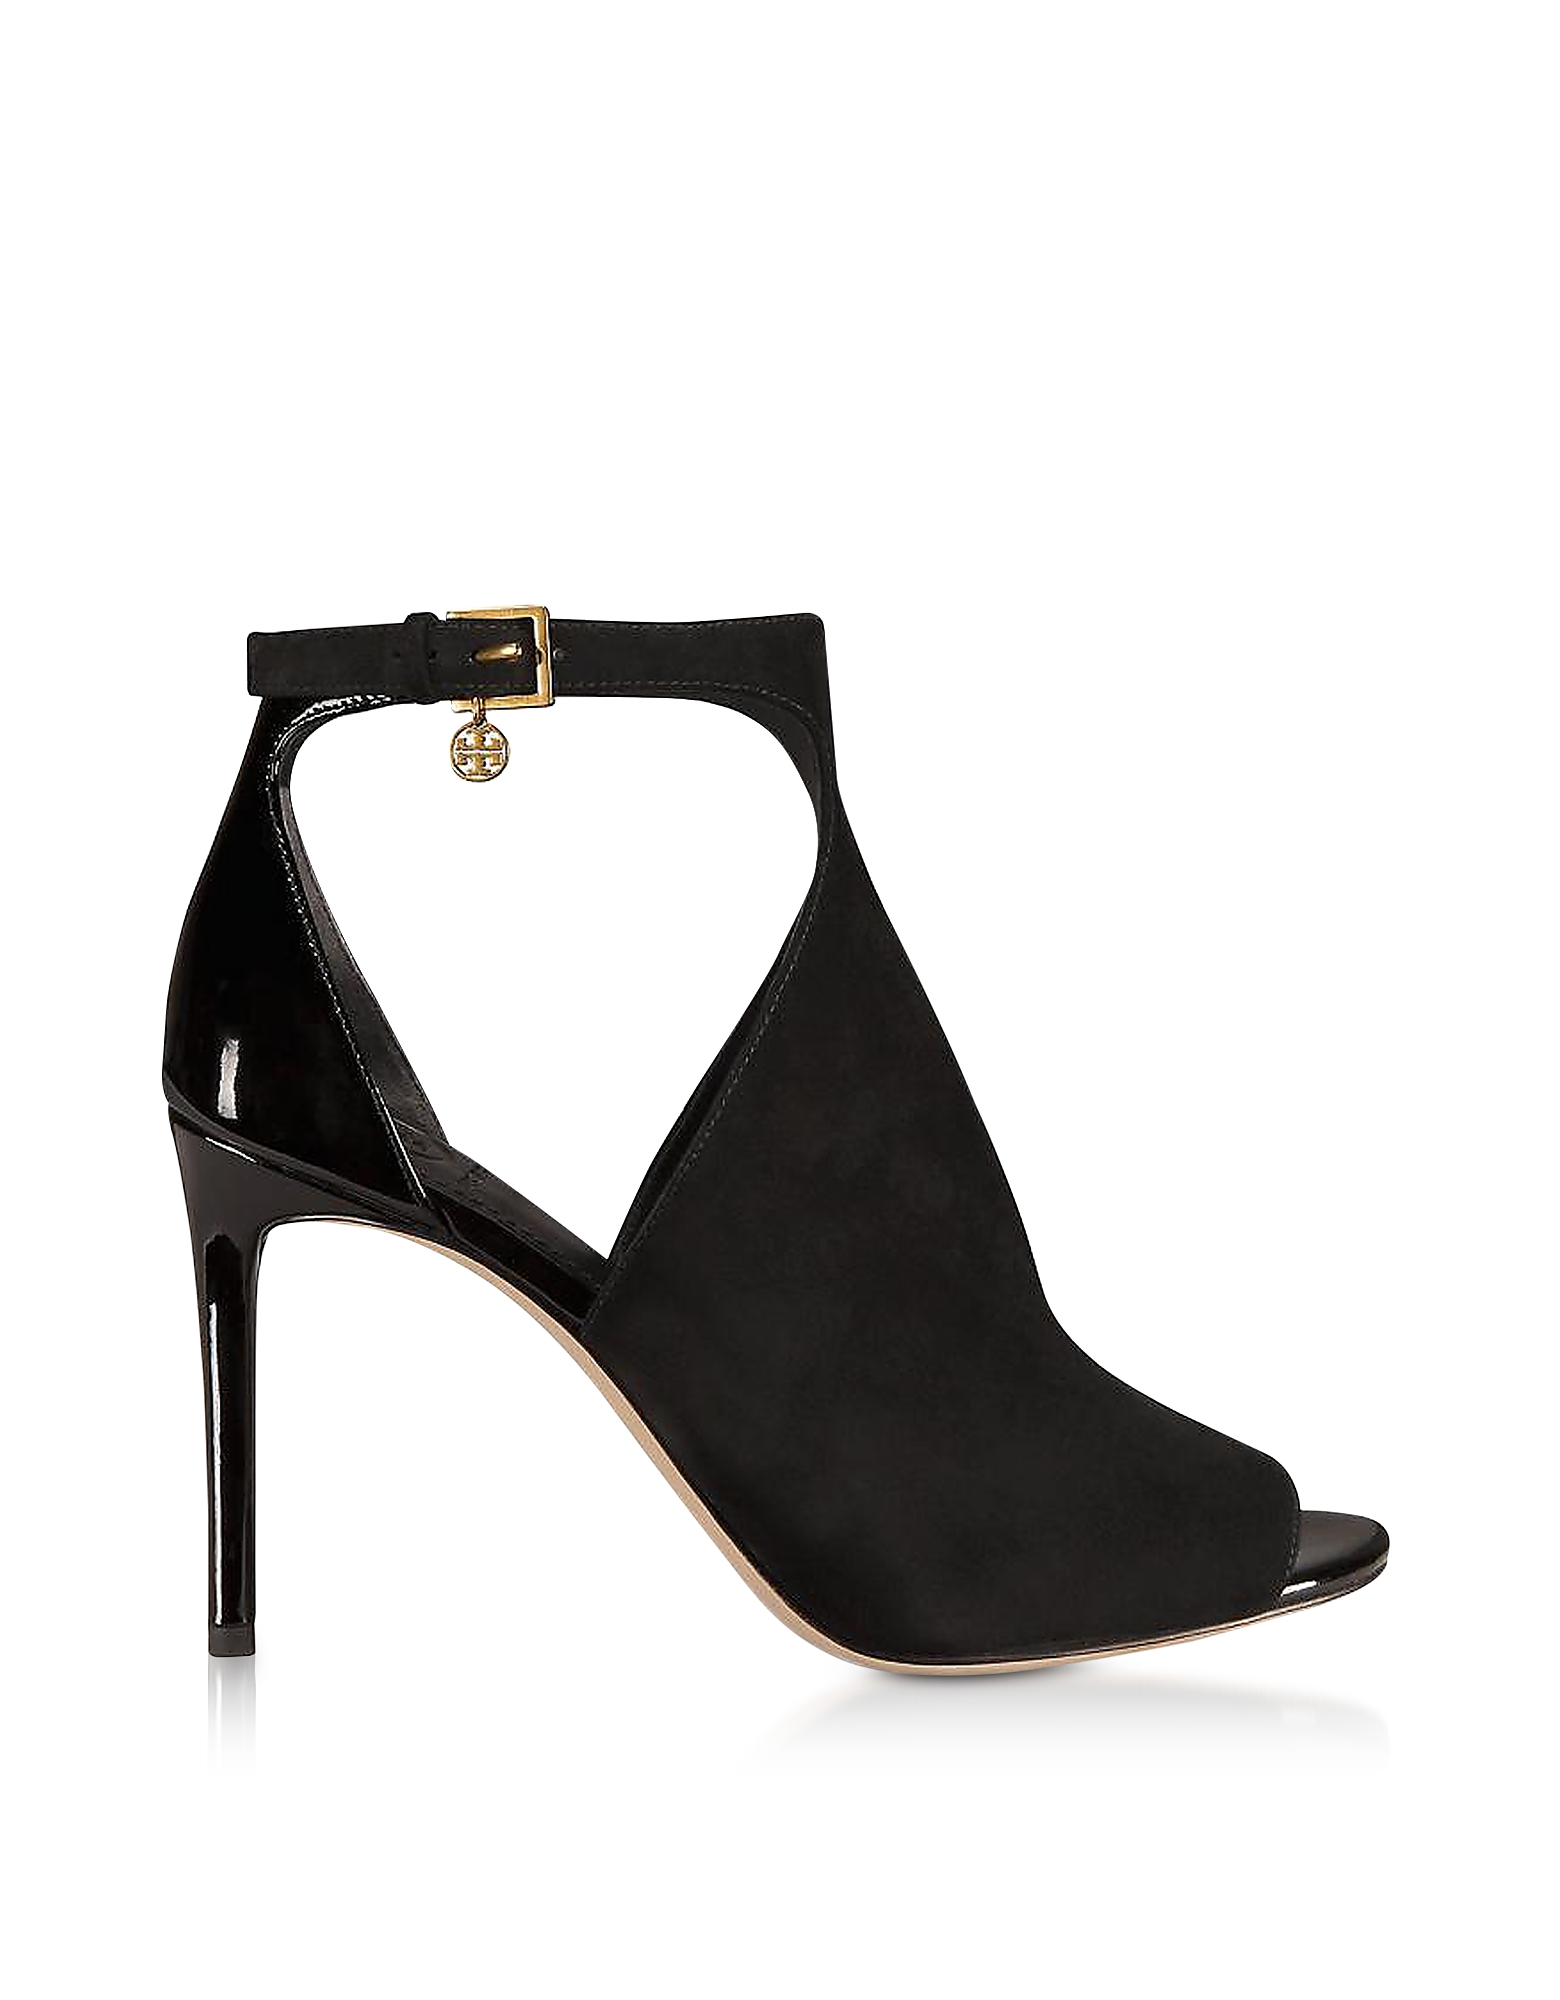 Tory Burch Designer Shoes, Ashton Bootie Black Suede and Patent Leather Sandals